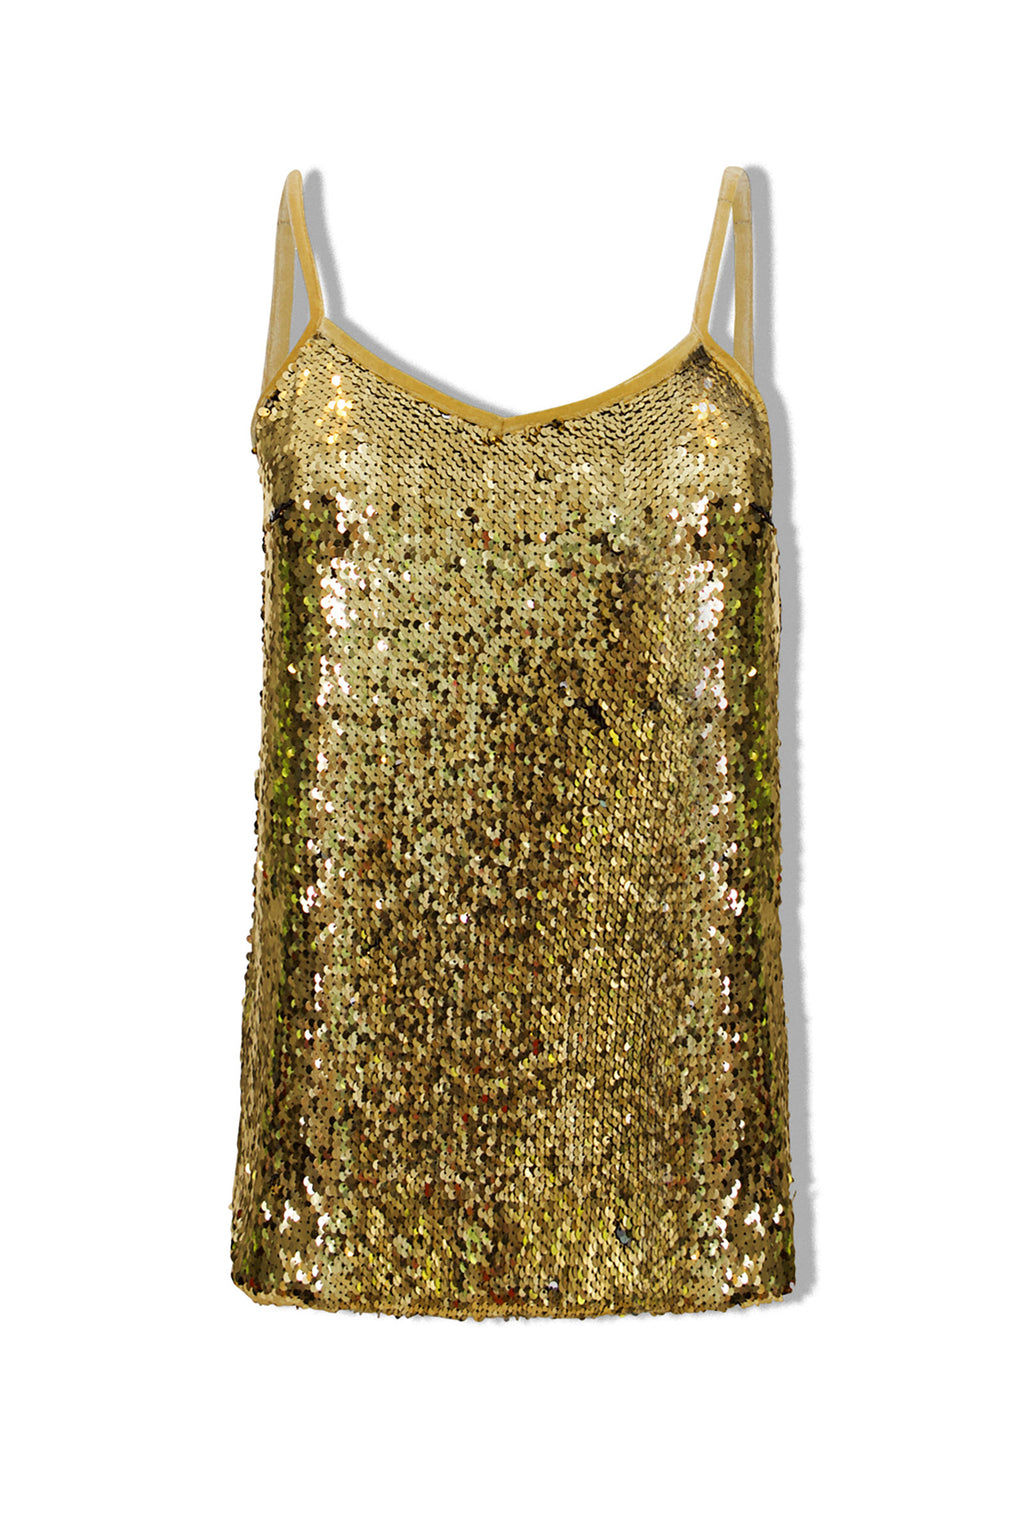 Ilona Rich Gold Sequin Cami Top